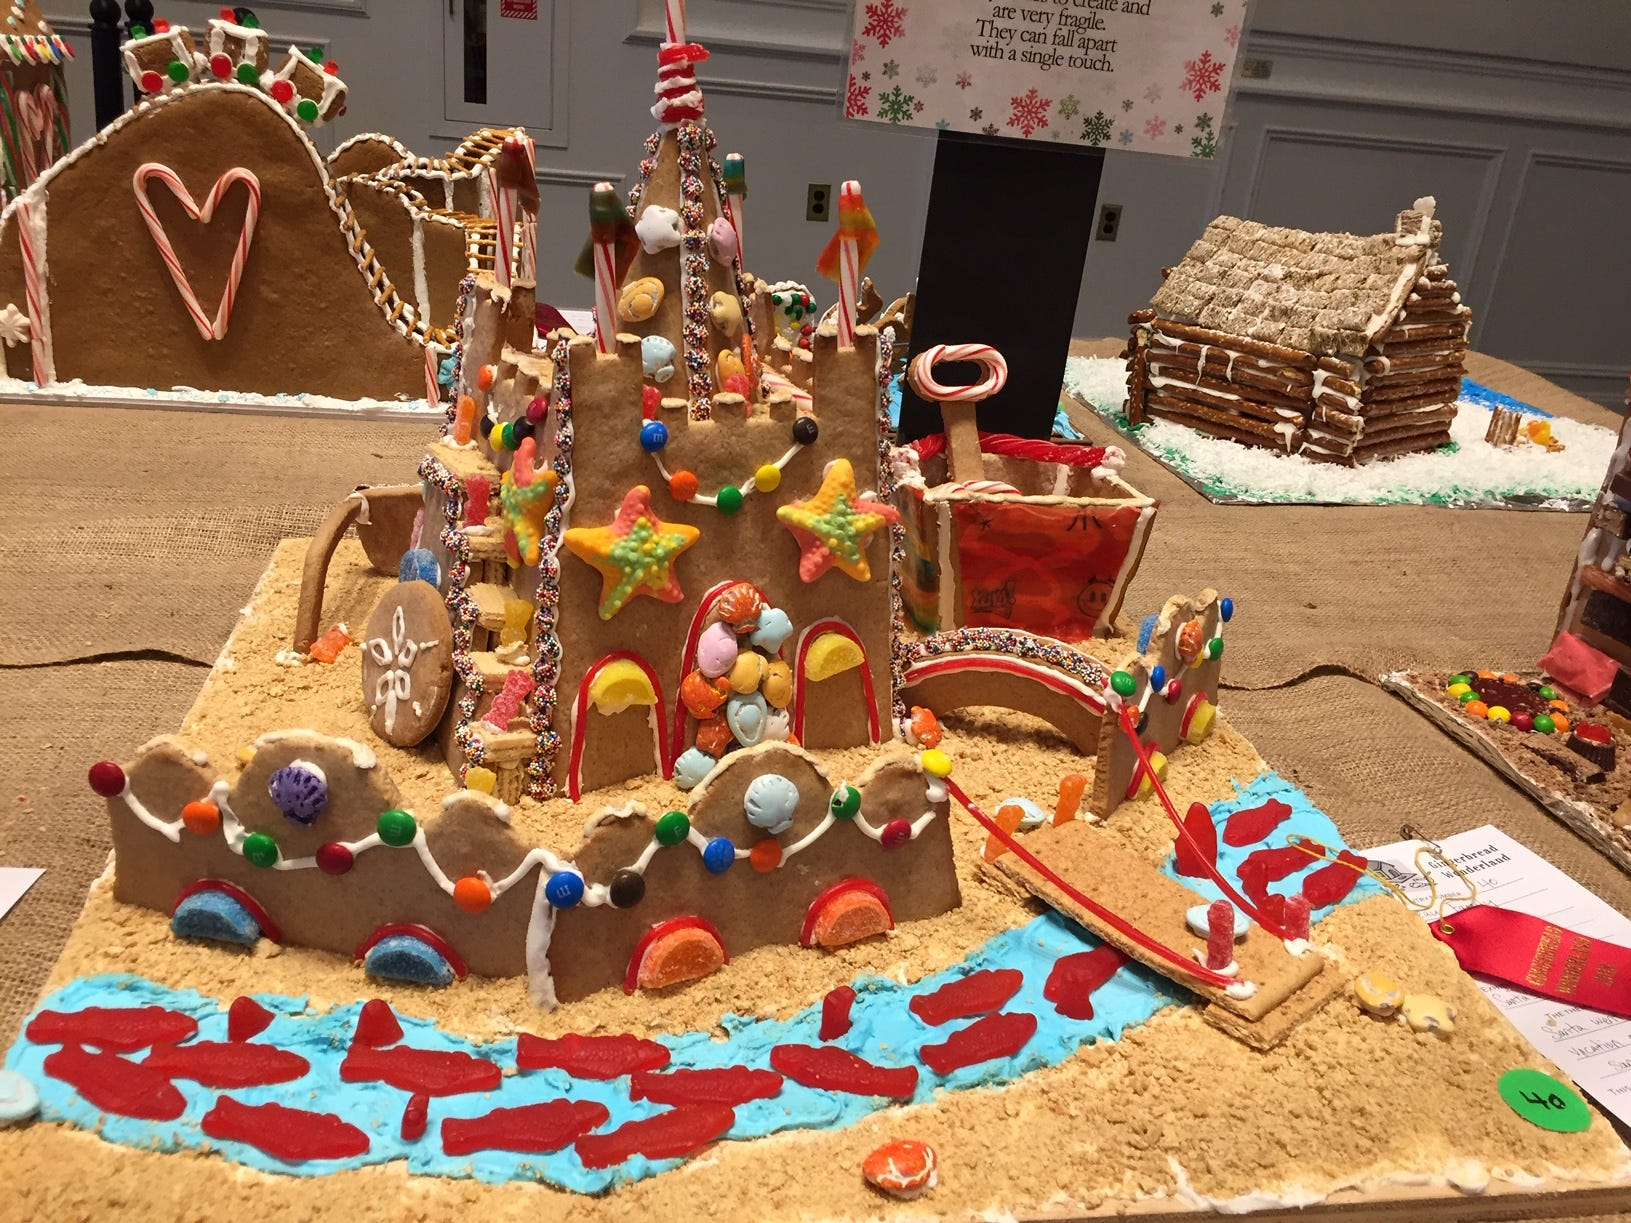 """Santa's Summer Sandcastle"" by the Bleau Family of Denville at the 2018 Gingerbread Wonderland at the Frelinghuysen Arboretum. Family category."